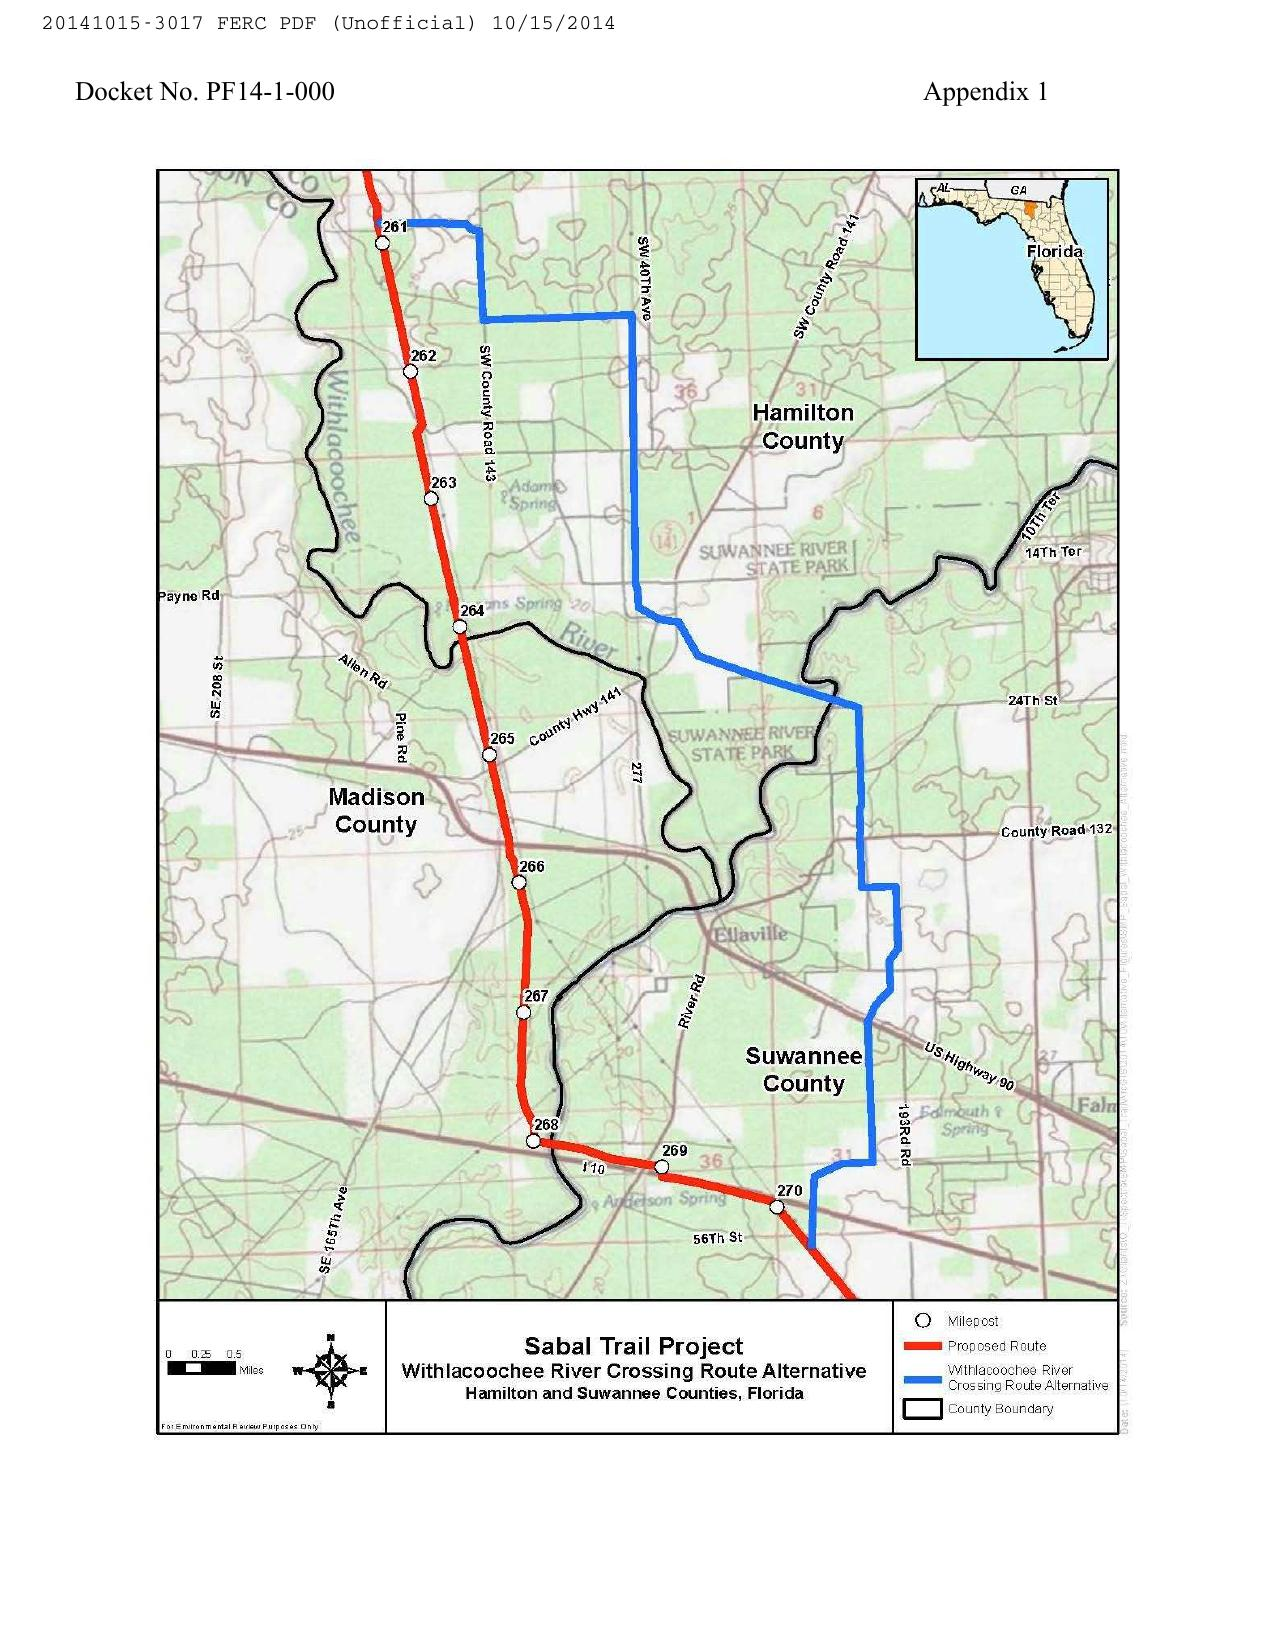 1275x1650 Withlacoochee River Crossing Route Alternative, Hamilton and Suwannee Counties, Florida, in Sabal Trail Notice of EIS Intent, by John S. Quarterman, for SpectraBusters.org, 15 October 2014